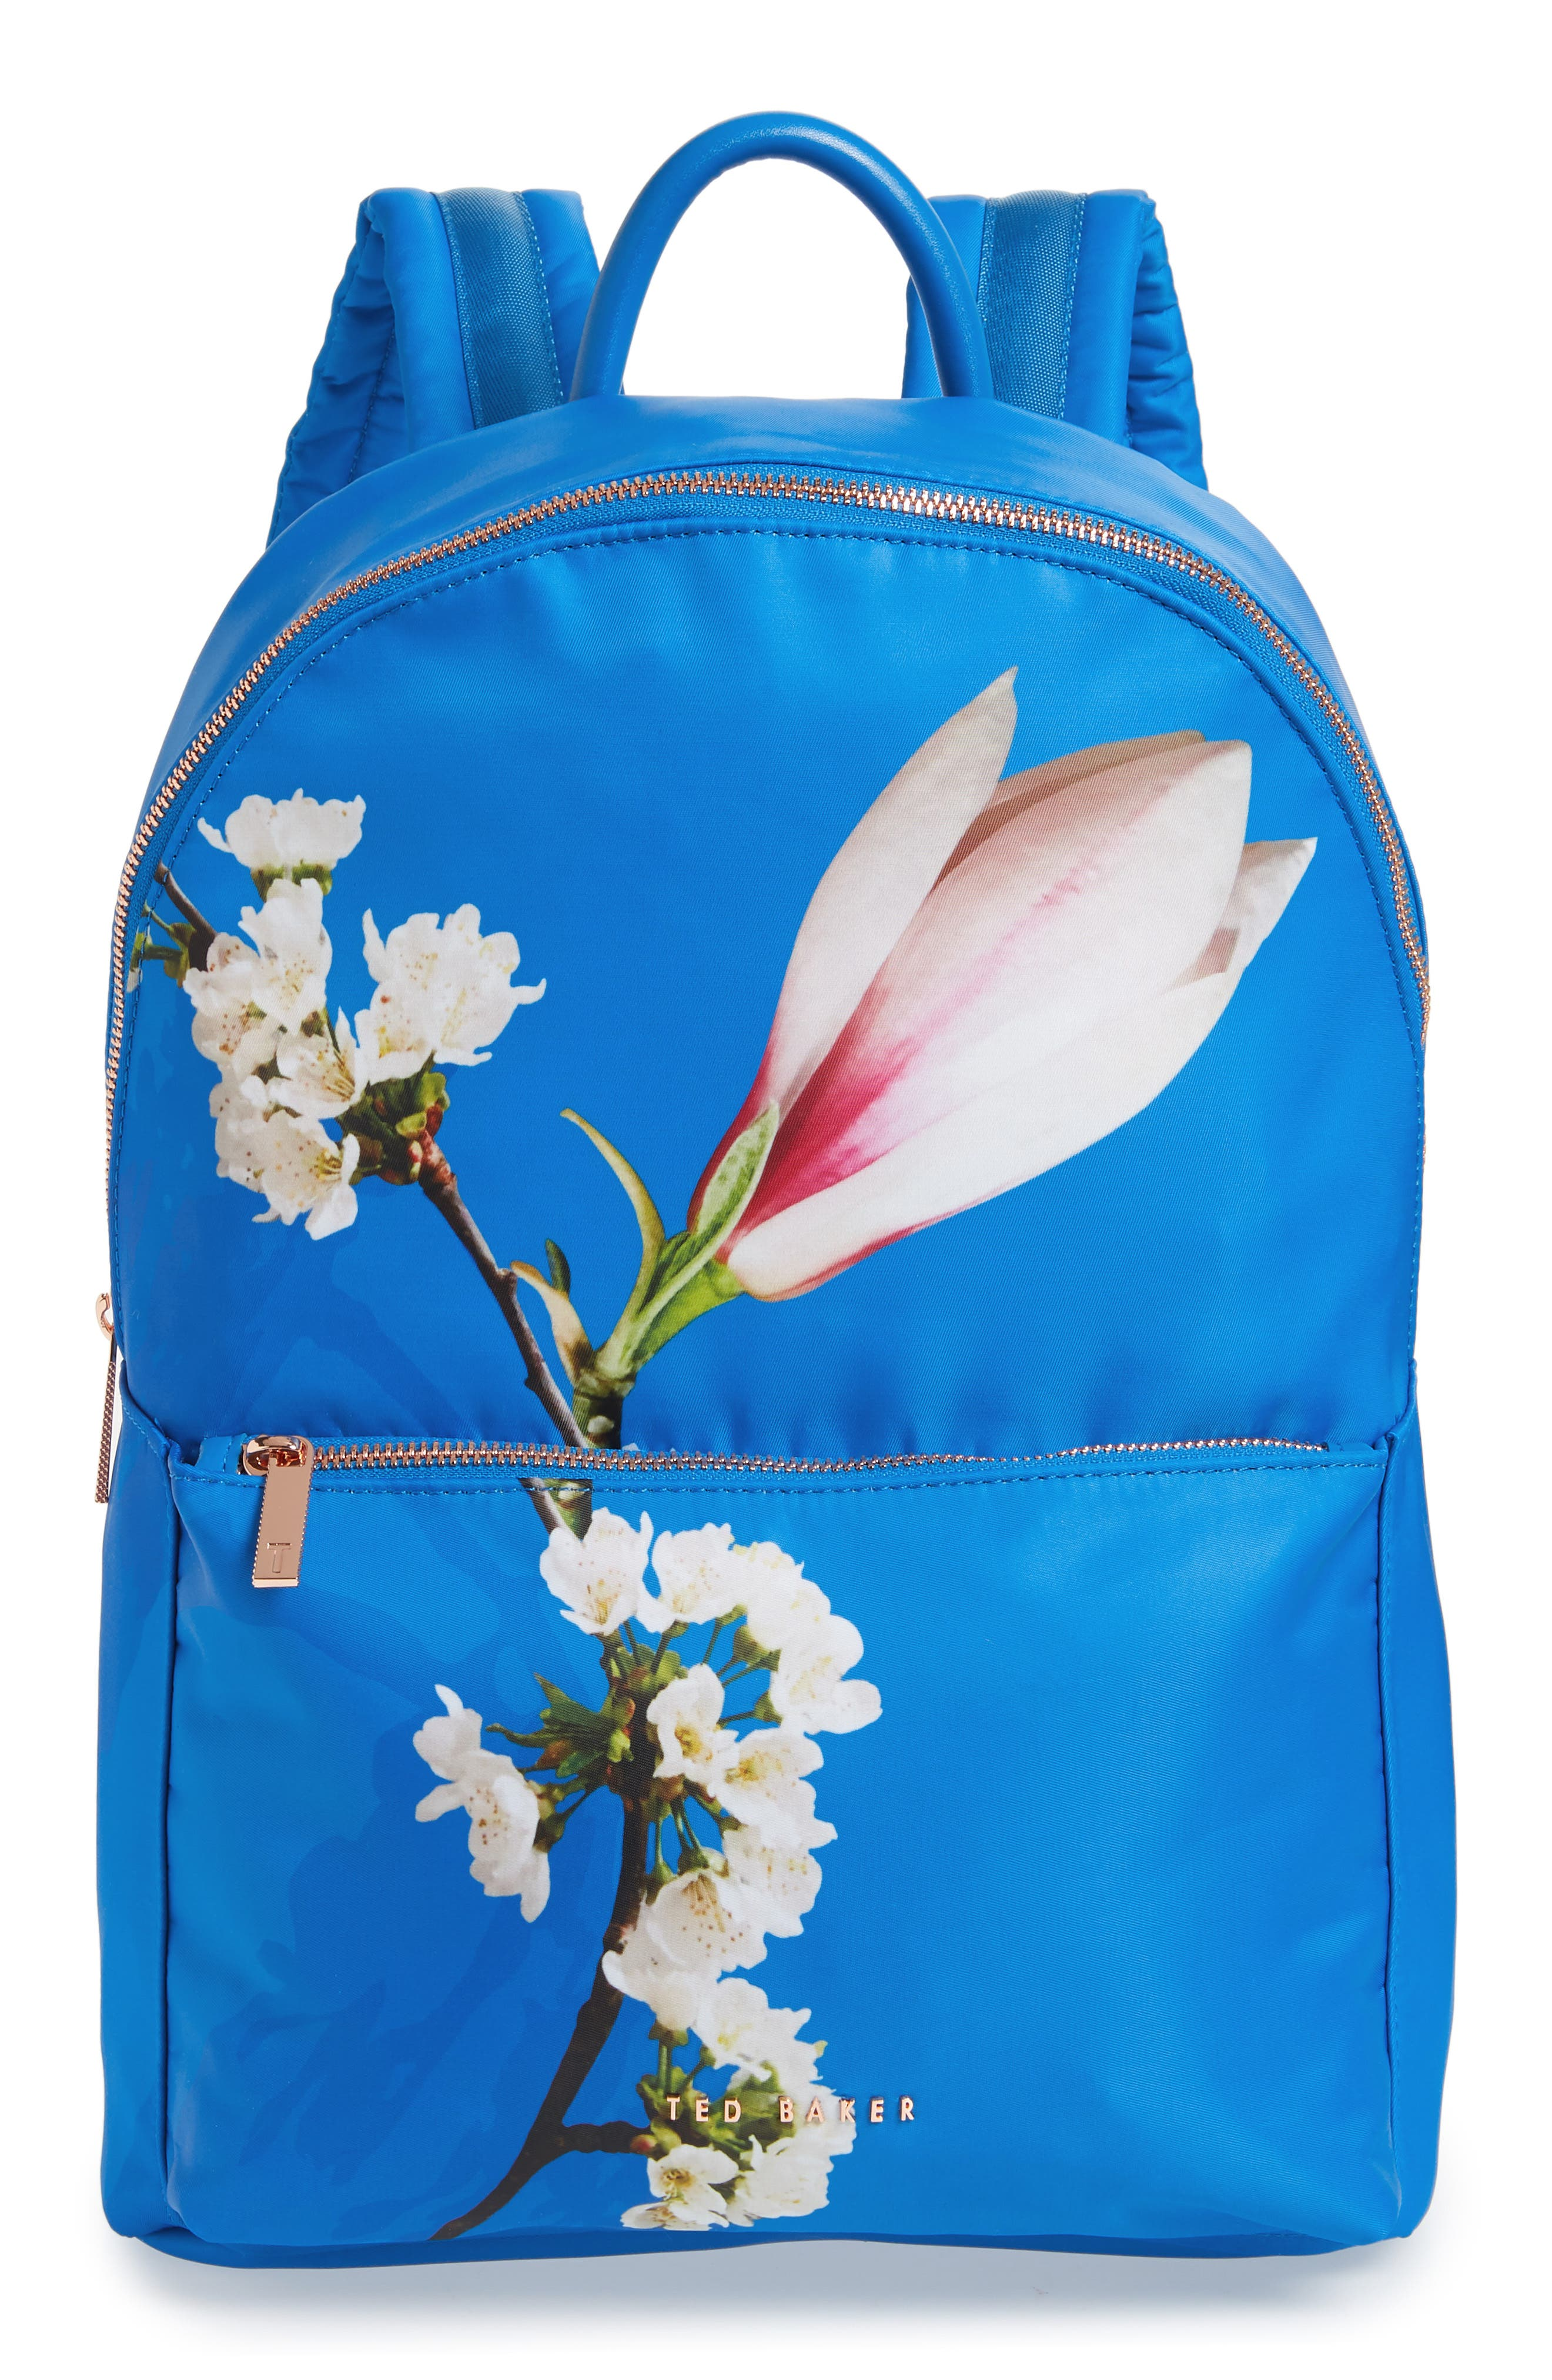 Harmony Print Backpack,                         Main,                         color, BRIGHT BLUE